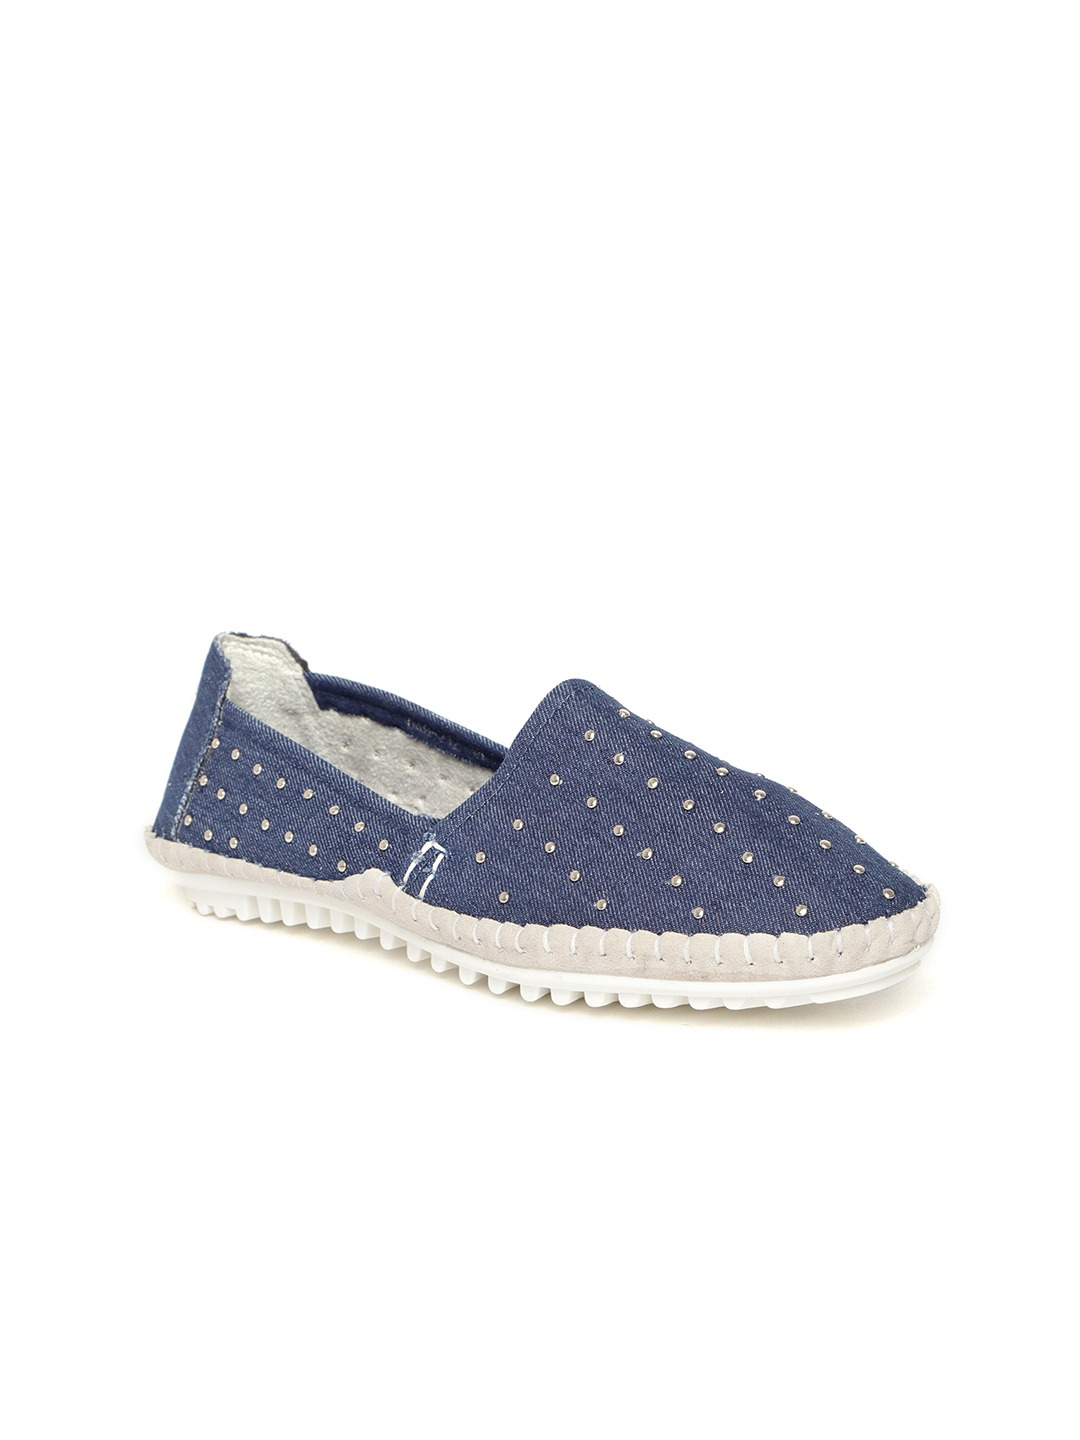 Blue Studded Slip-On Sneakers